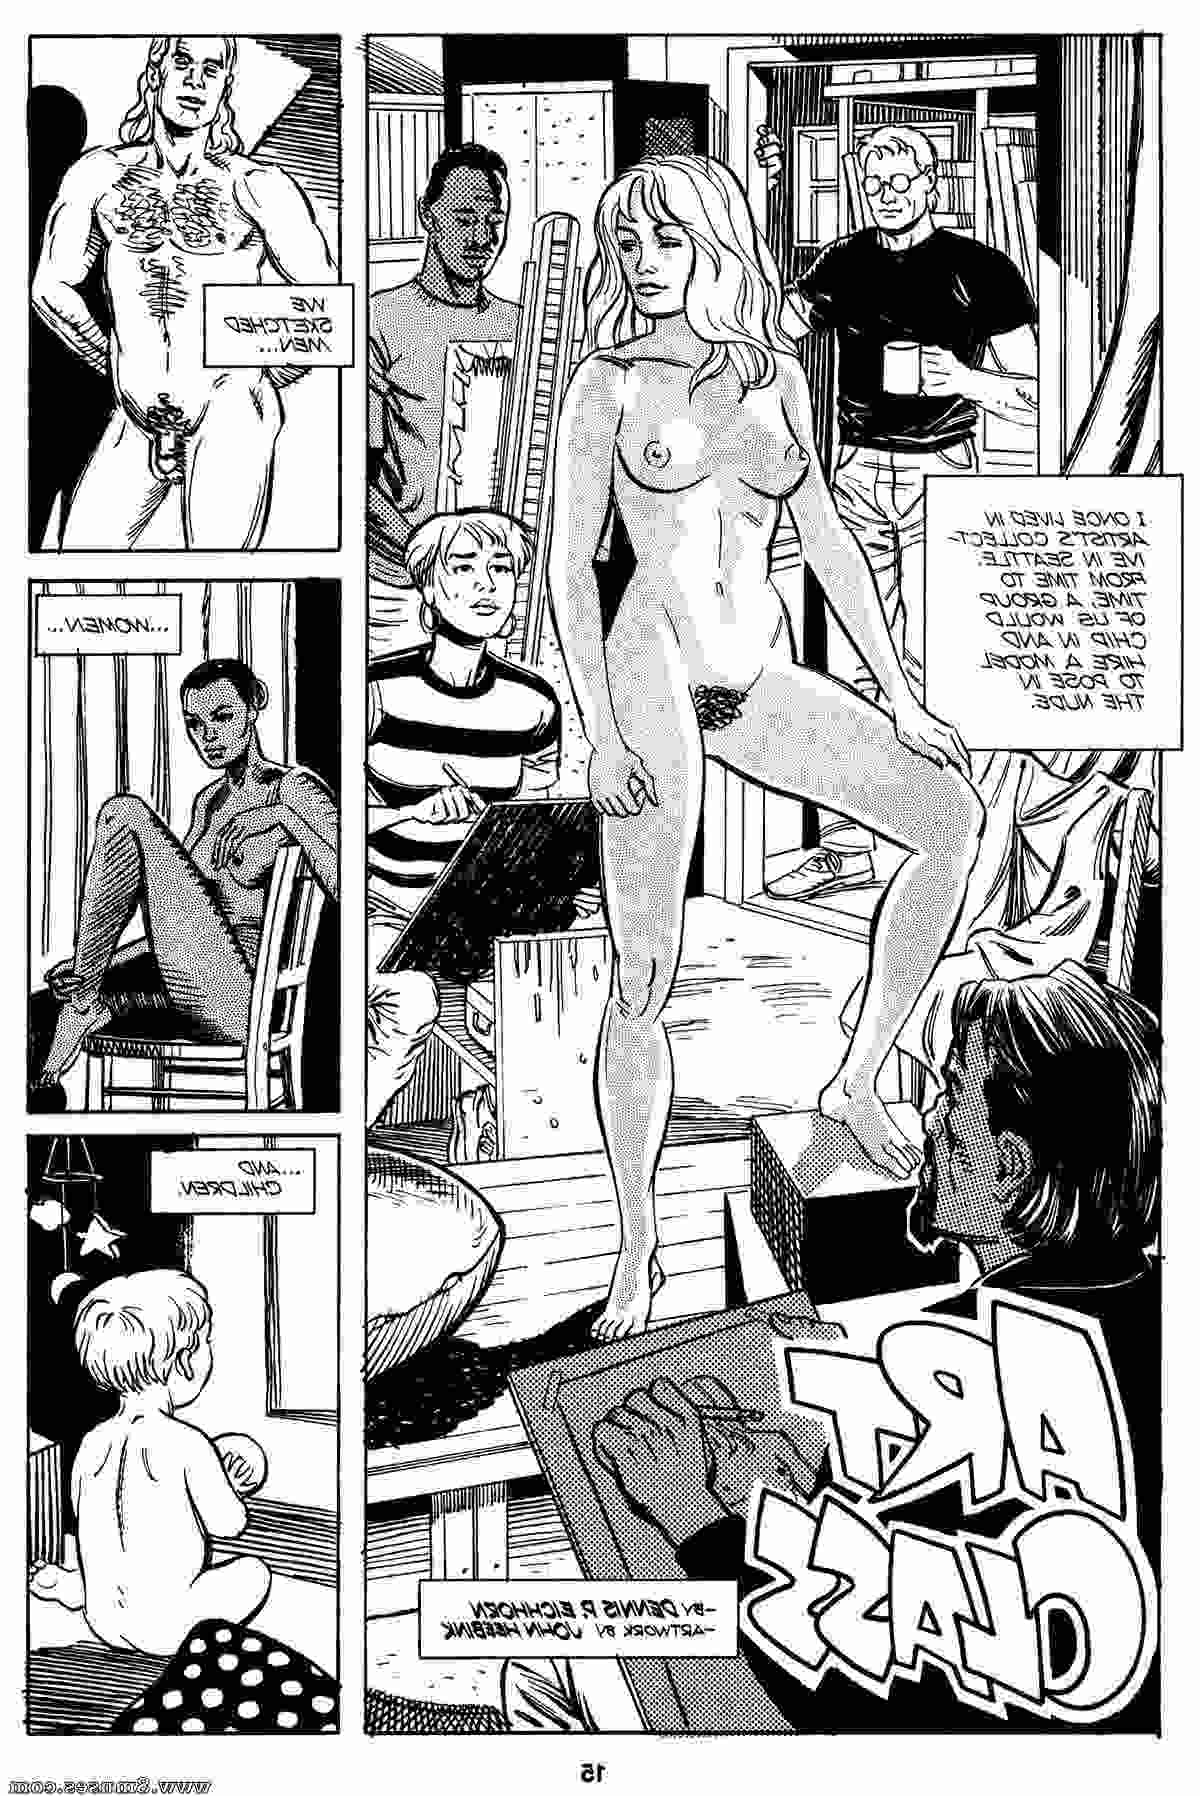 EROS-Comics/Real-Smut Real_Smut__8muses_-_Sex_and_Porn_Comics_17.jpg